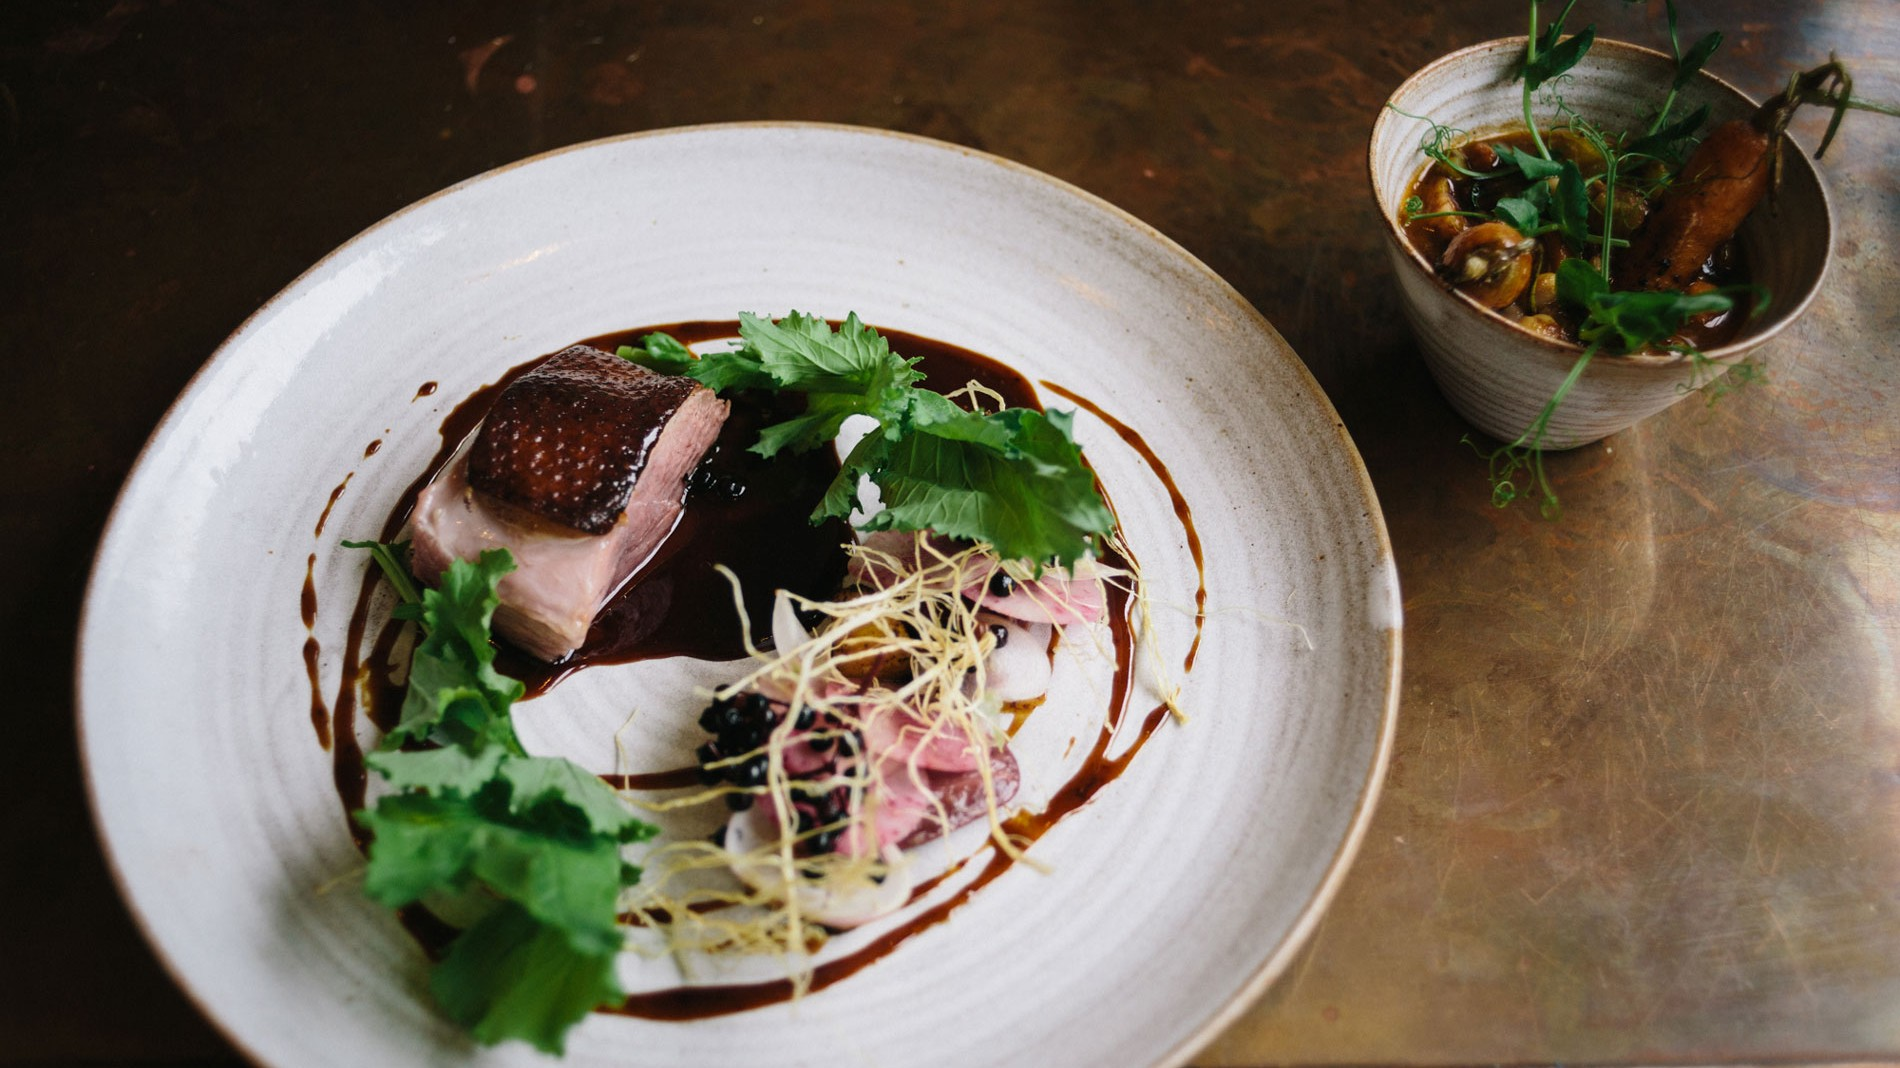 pidgin-Smoked-duck-breast,-smoked-confit-duck-leg-and-neck-cassoulet,-with-pickled-elderberries,-koji-parsnips,-turnips,-and-radishes